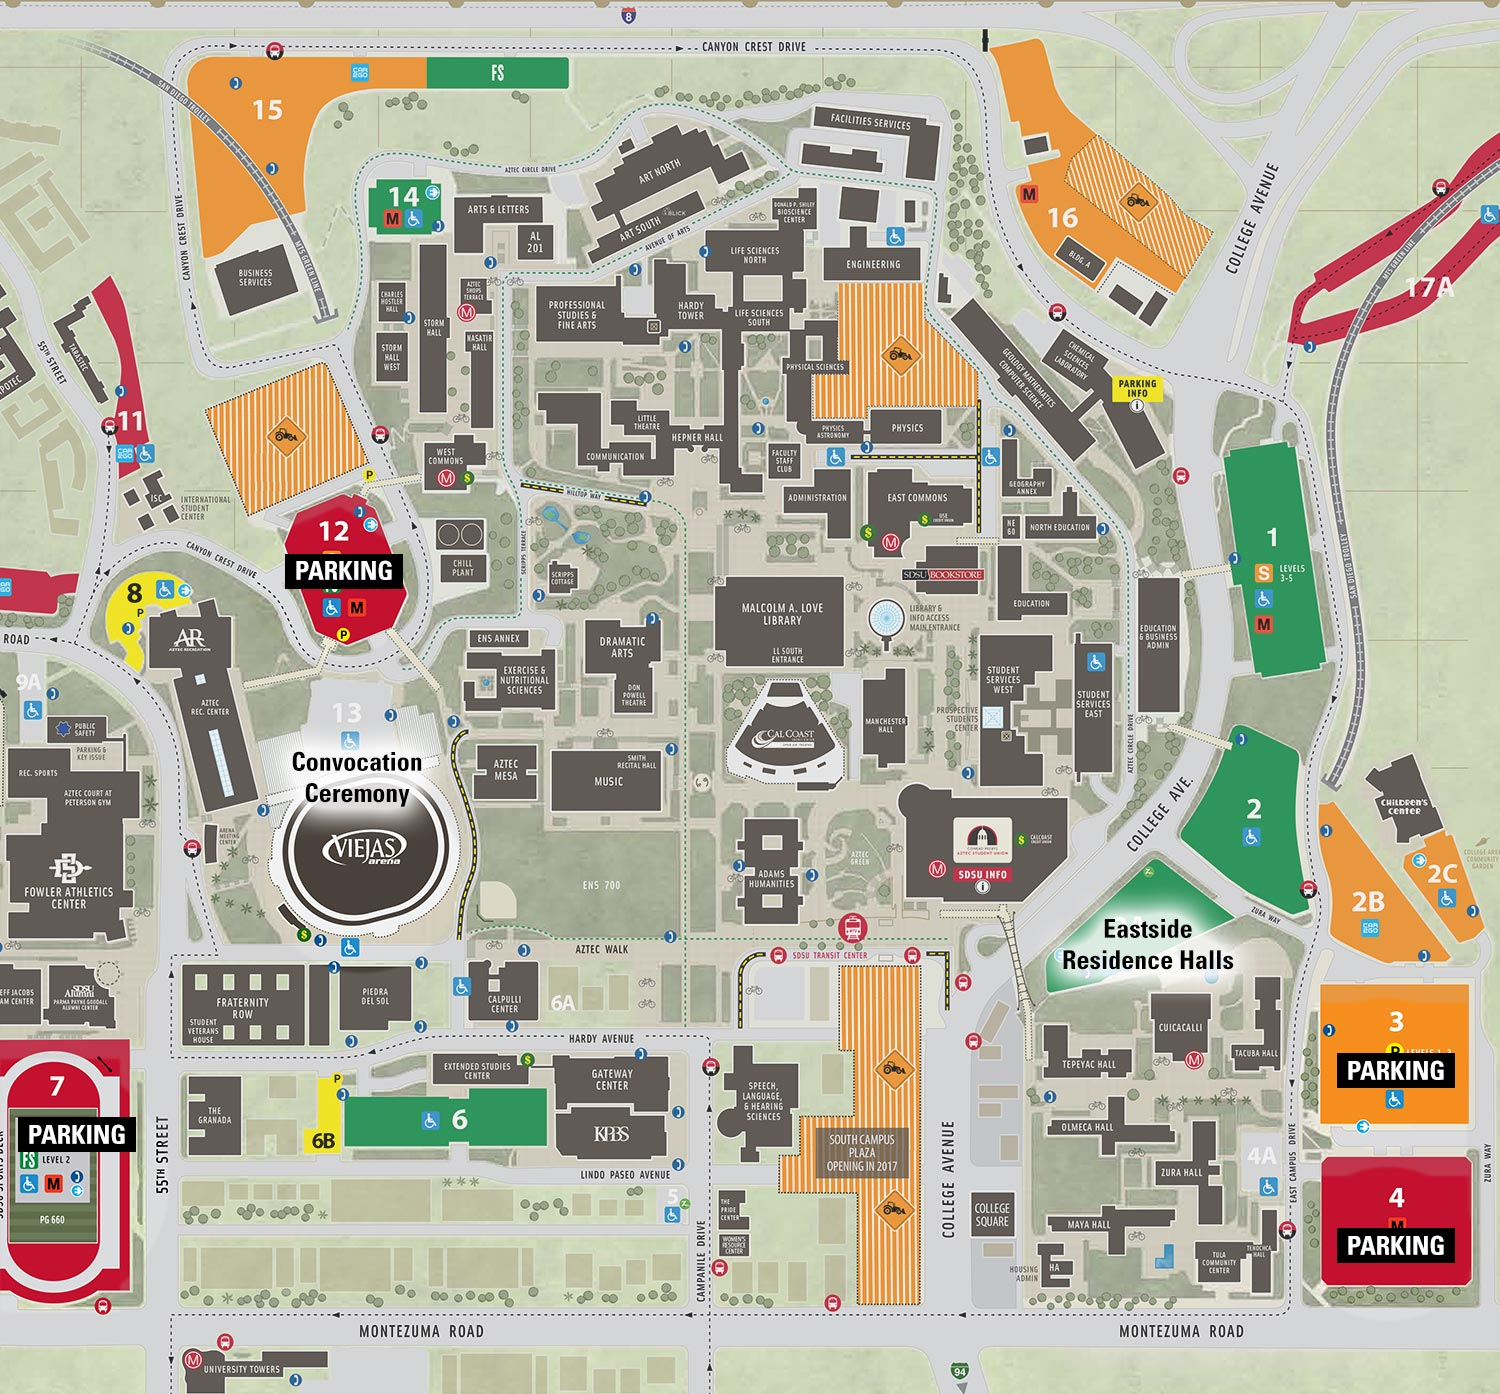 Sdsu Campus Map Pdf.San Diego State University Campus Map Androidplay Store